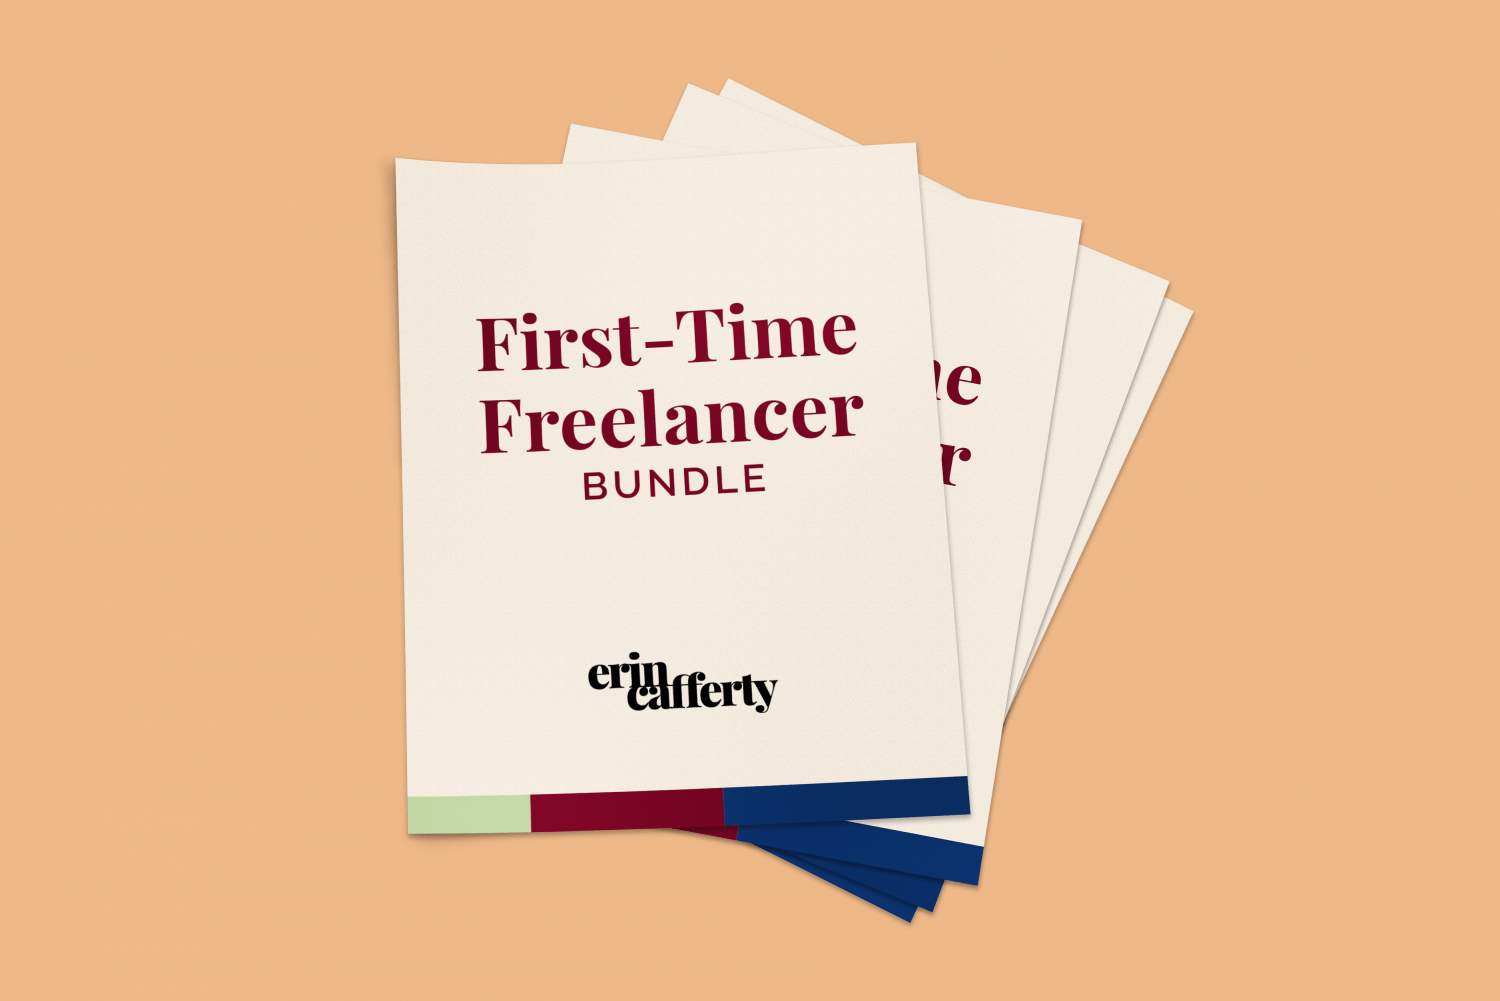 First-Time Freelancer Bundle